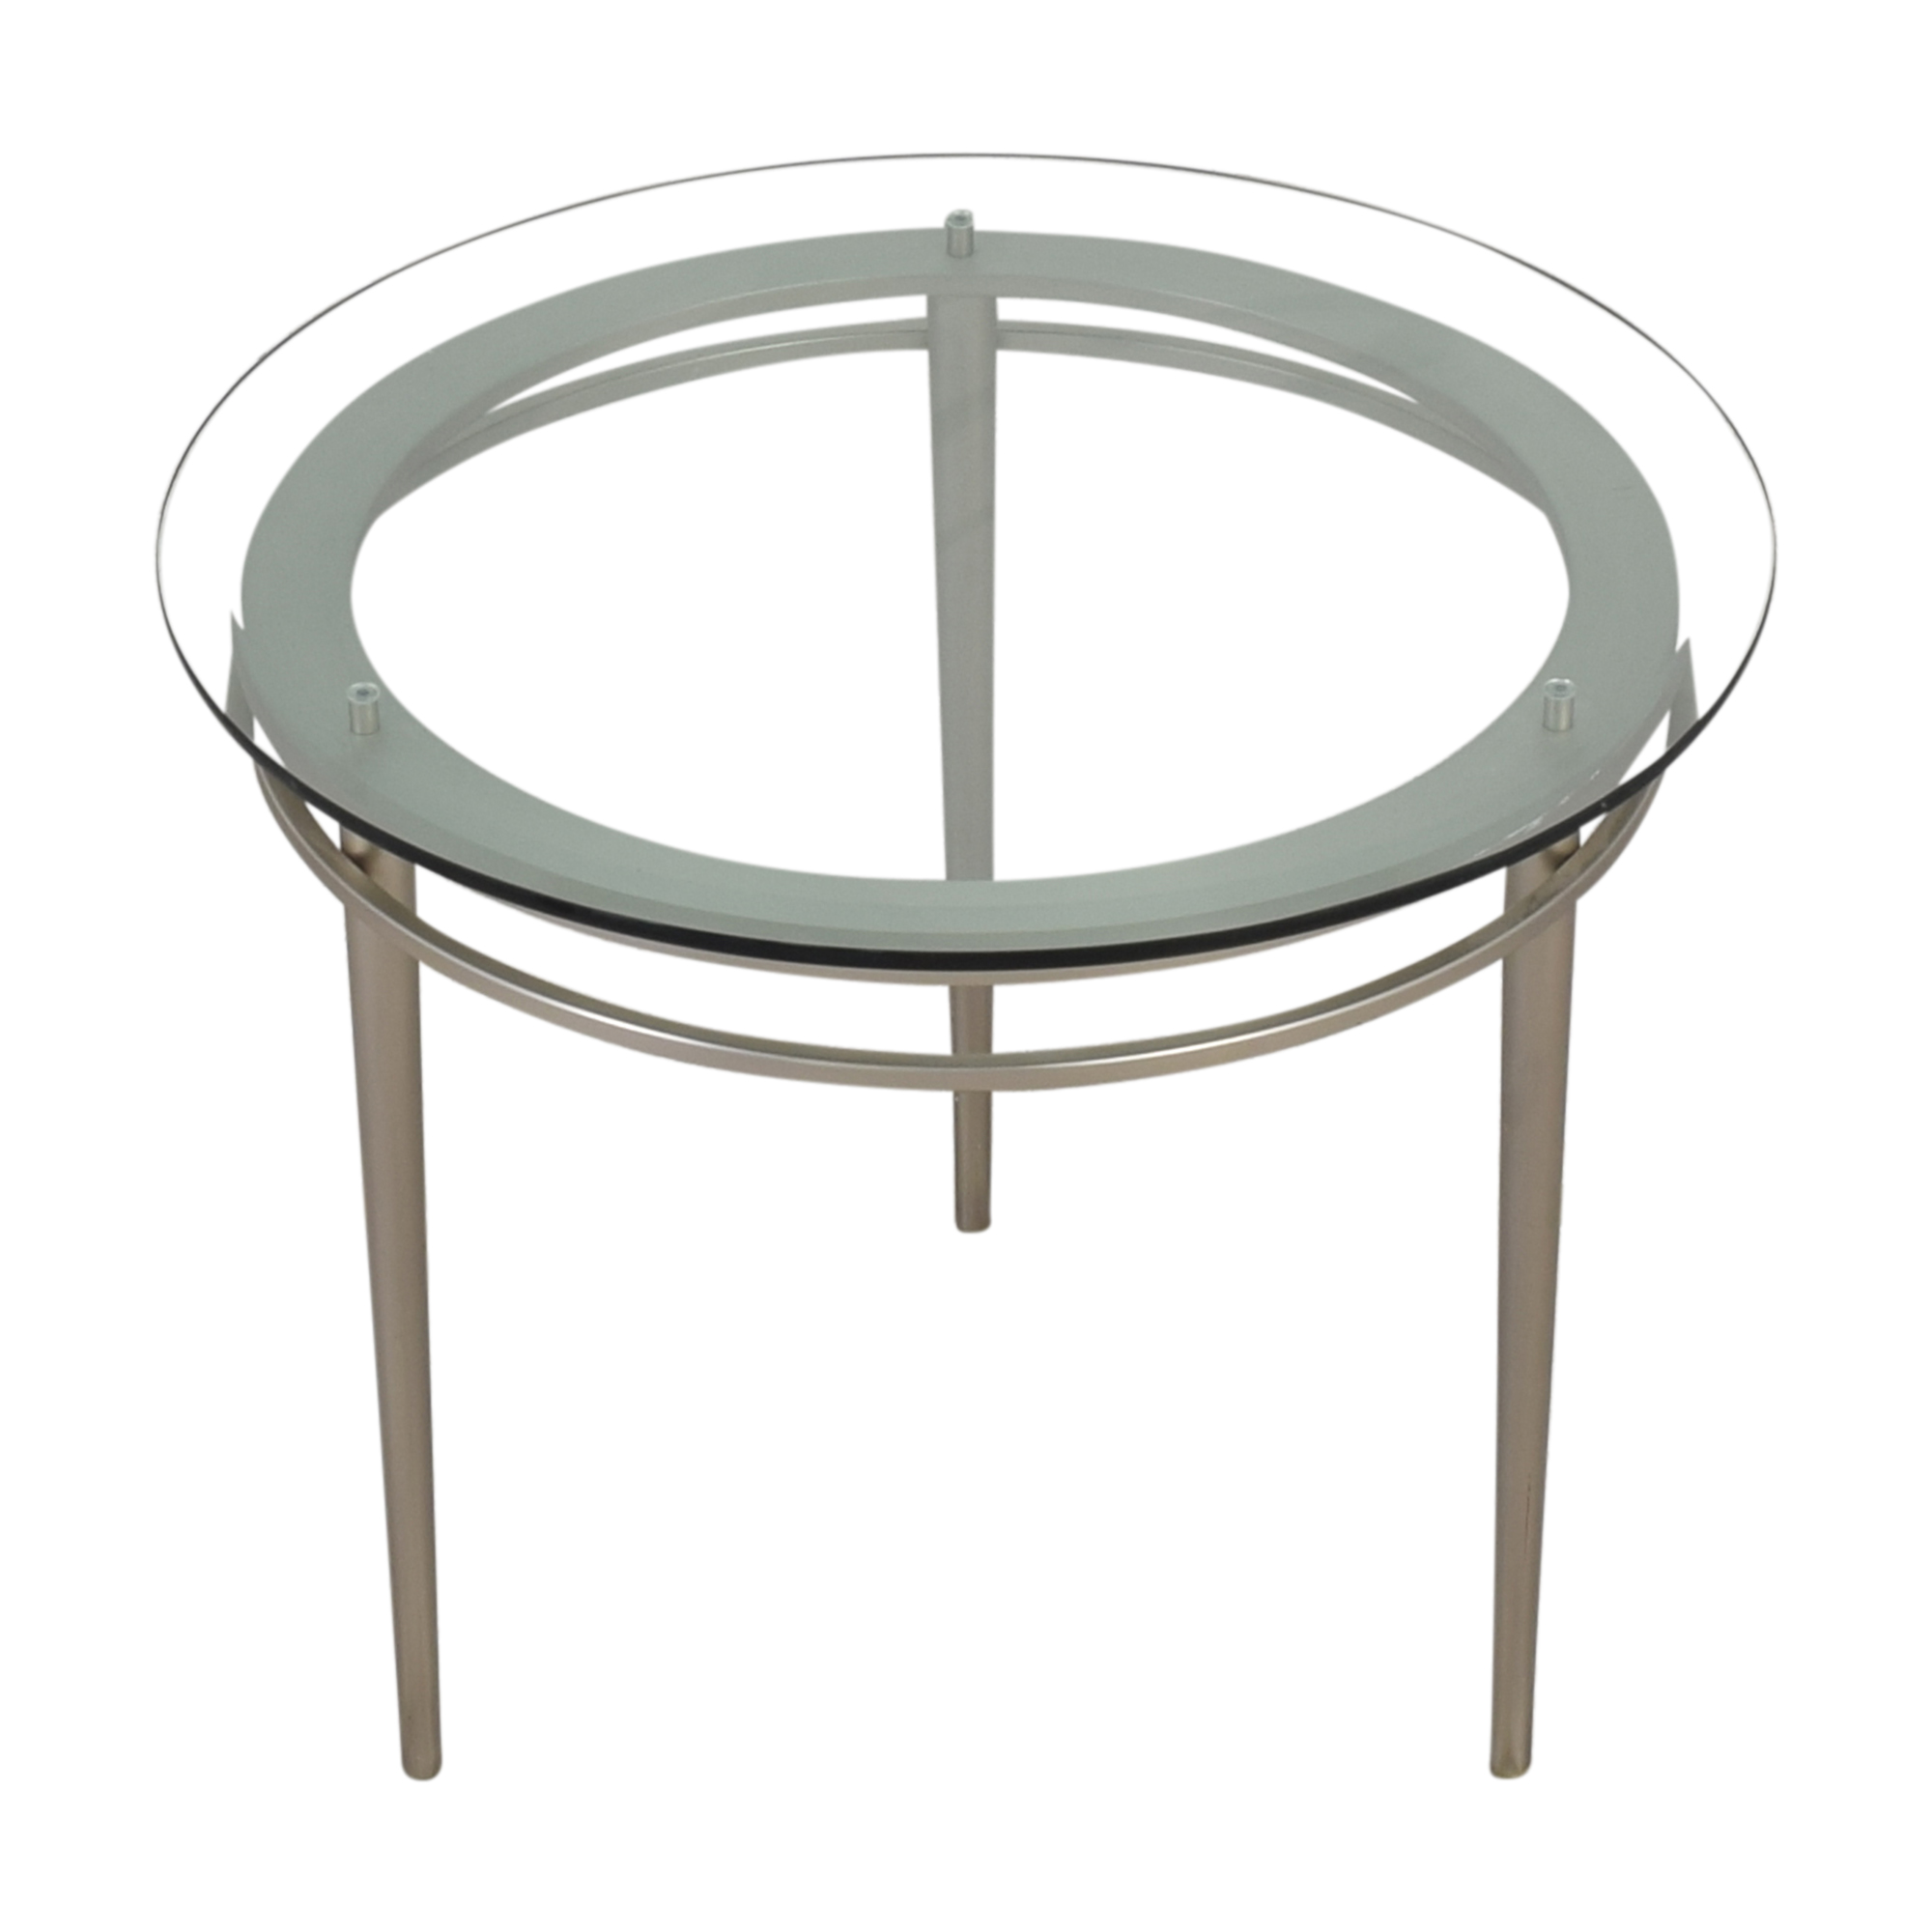 Ethan Allen Round Top Side Table / Tables